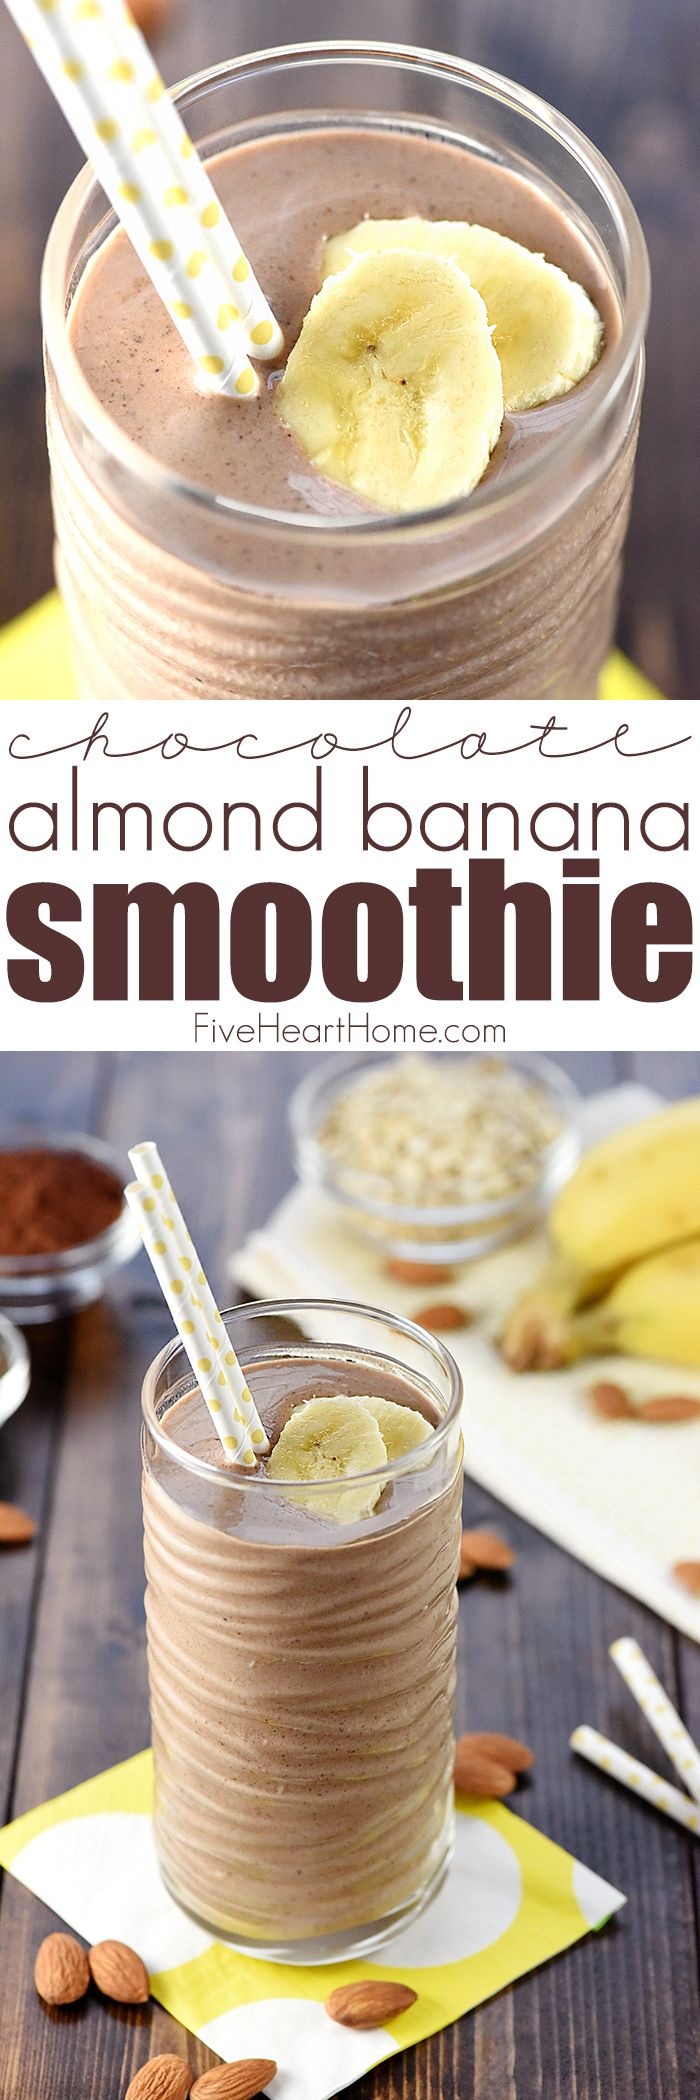 Chocolate Almond Banana Smoothie ~ a healthy, filling, decadent breakfast or snack, loaded with bananas, almond butter, Greek yogurt, oats, and chia seeds for a boost of protein, vitamins, calcium, and fiber!   FiveHeartHome.com